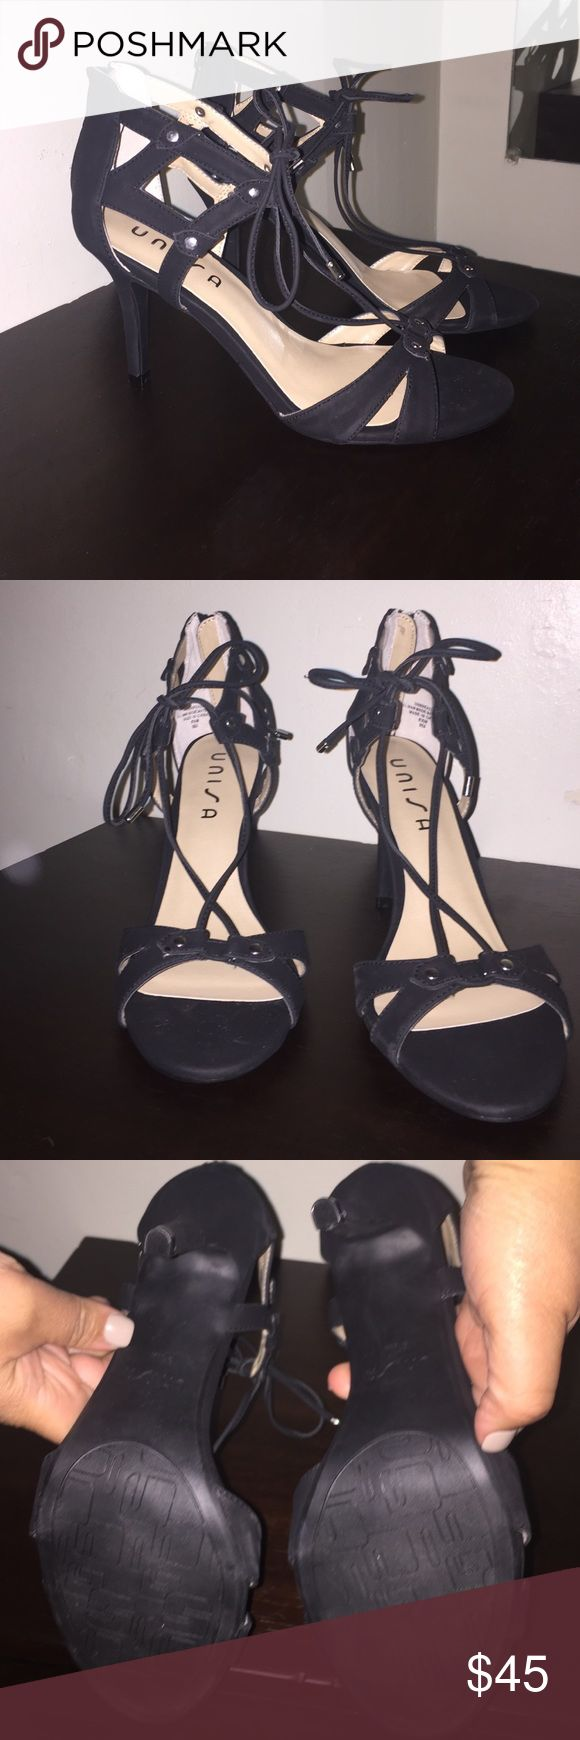 Black Strappy Dress Shoes Black Strappy Dress Shoes by Unisa. Size 8.5. Never worn. Excellent Condition. Unisa Shoes Heels